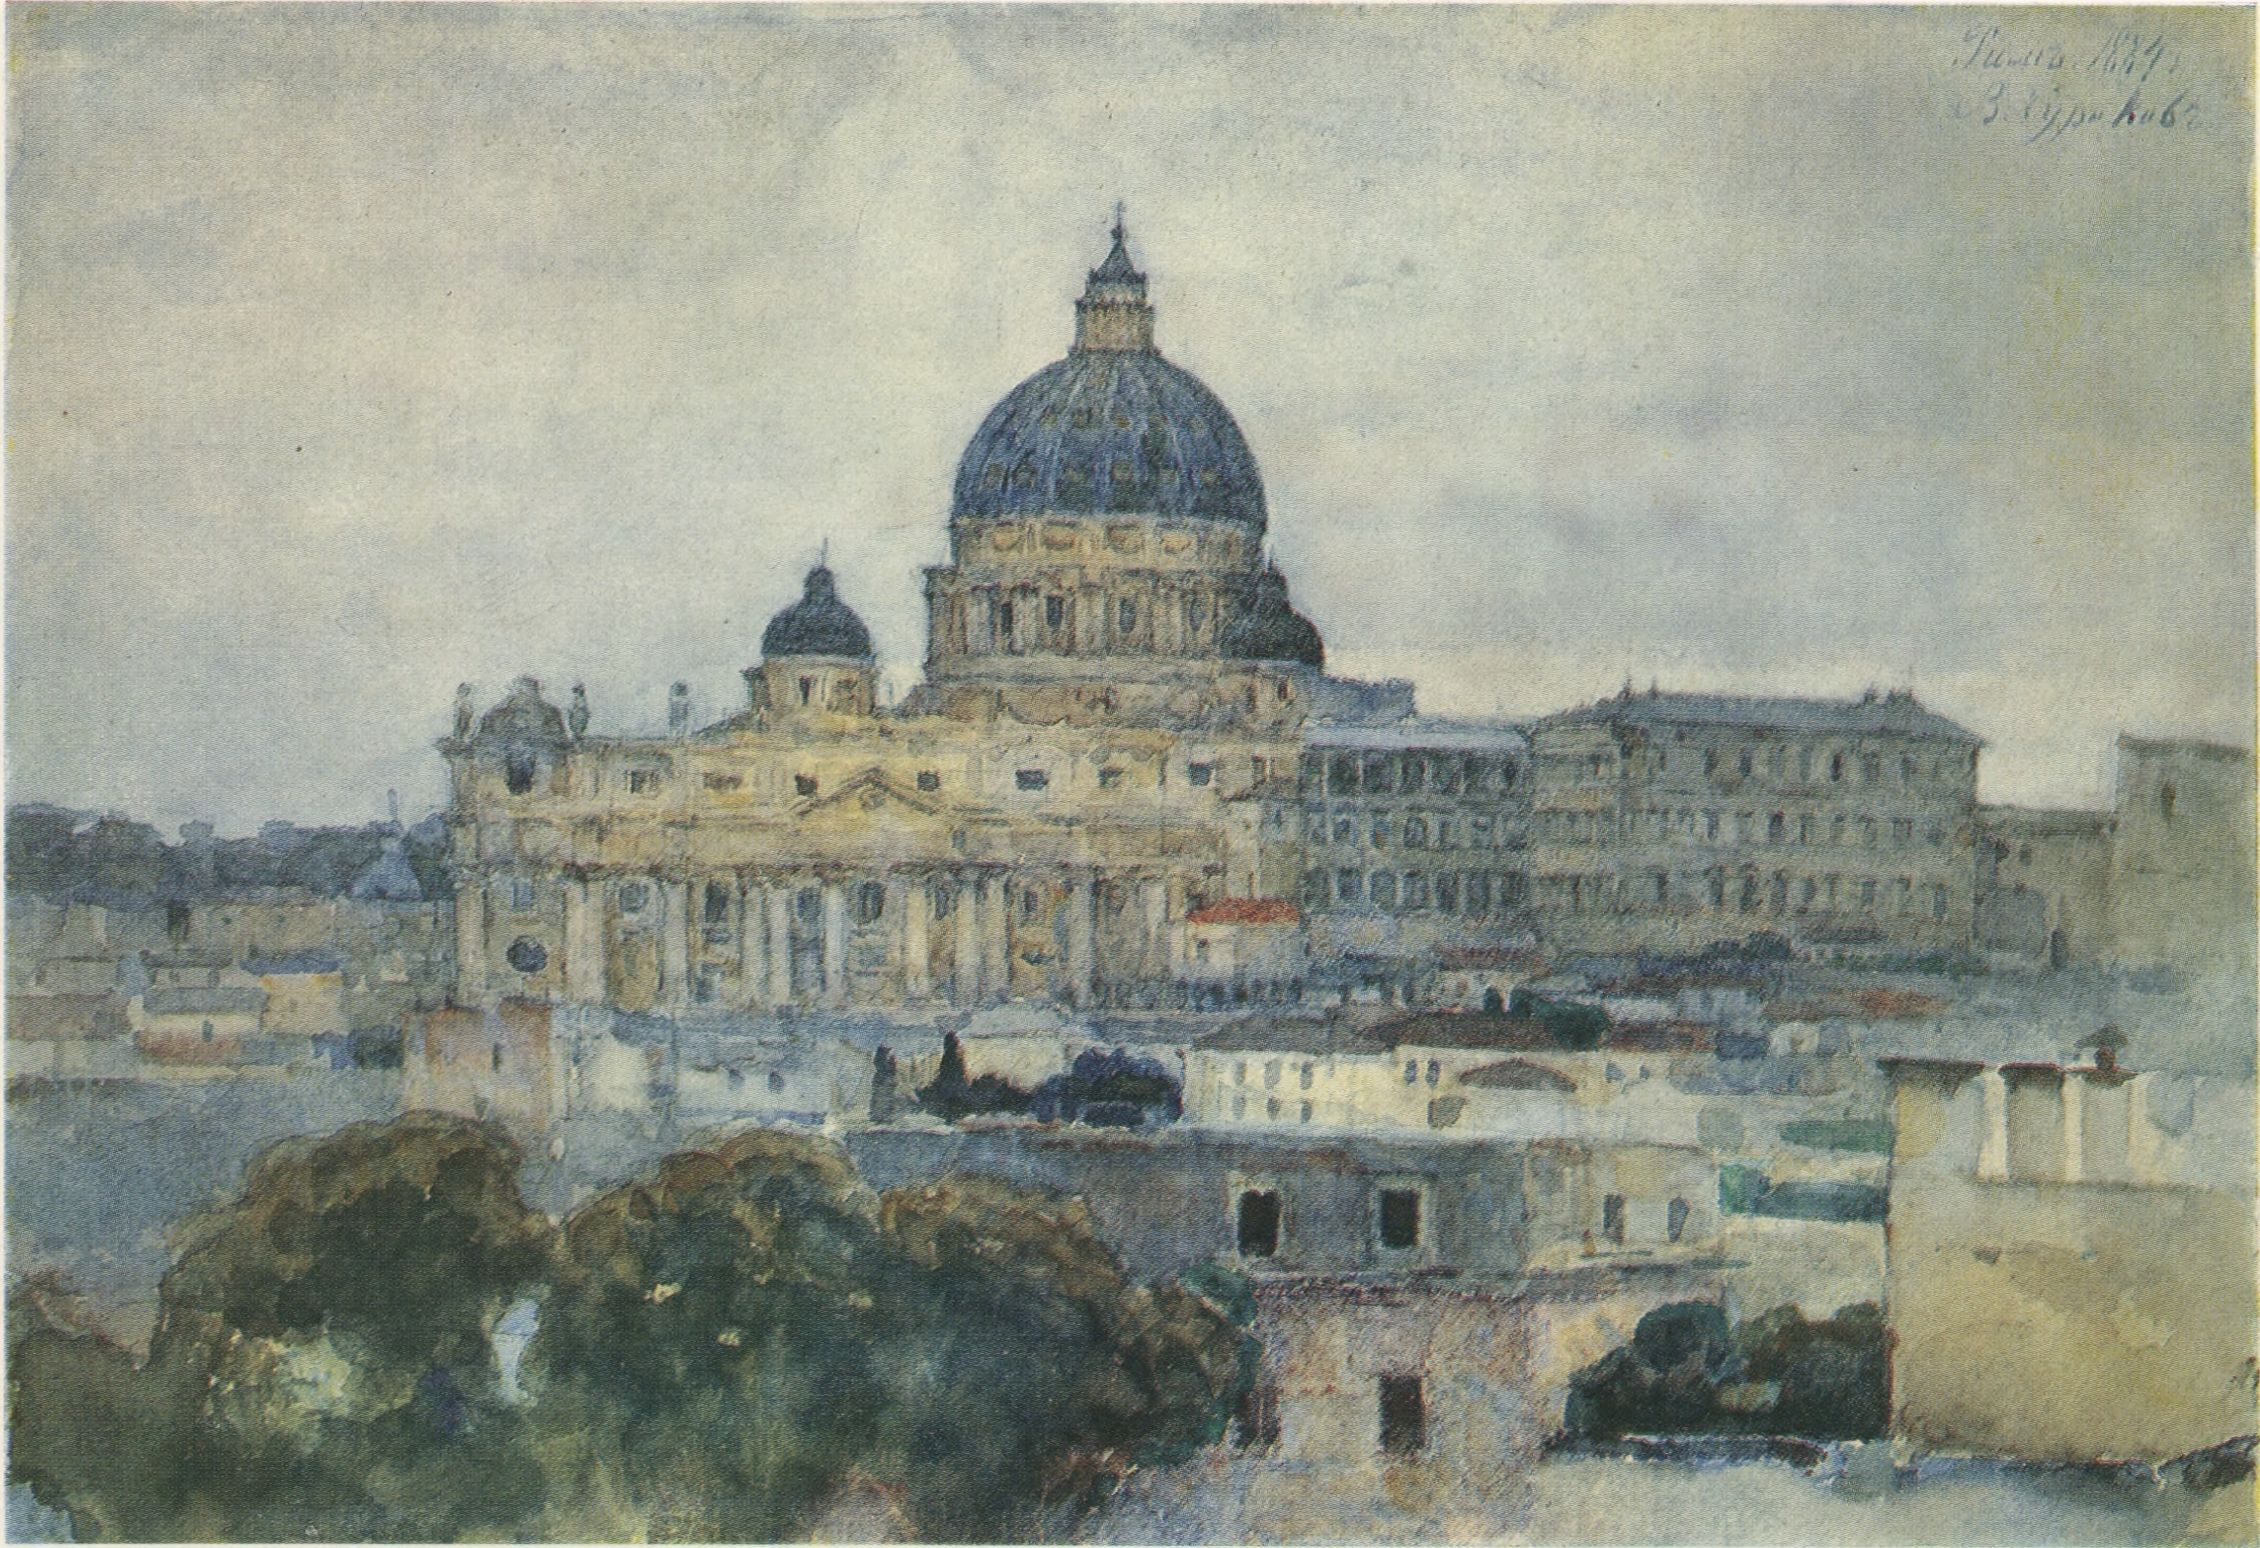 25. Собор св. Петра в Риме. 1884 (St. Peter's Cathedral in Rome. 1884)